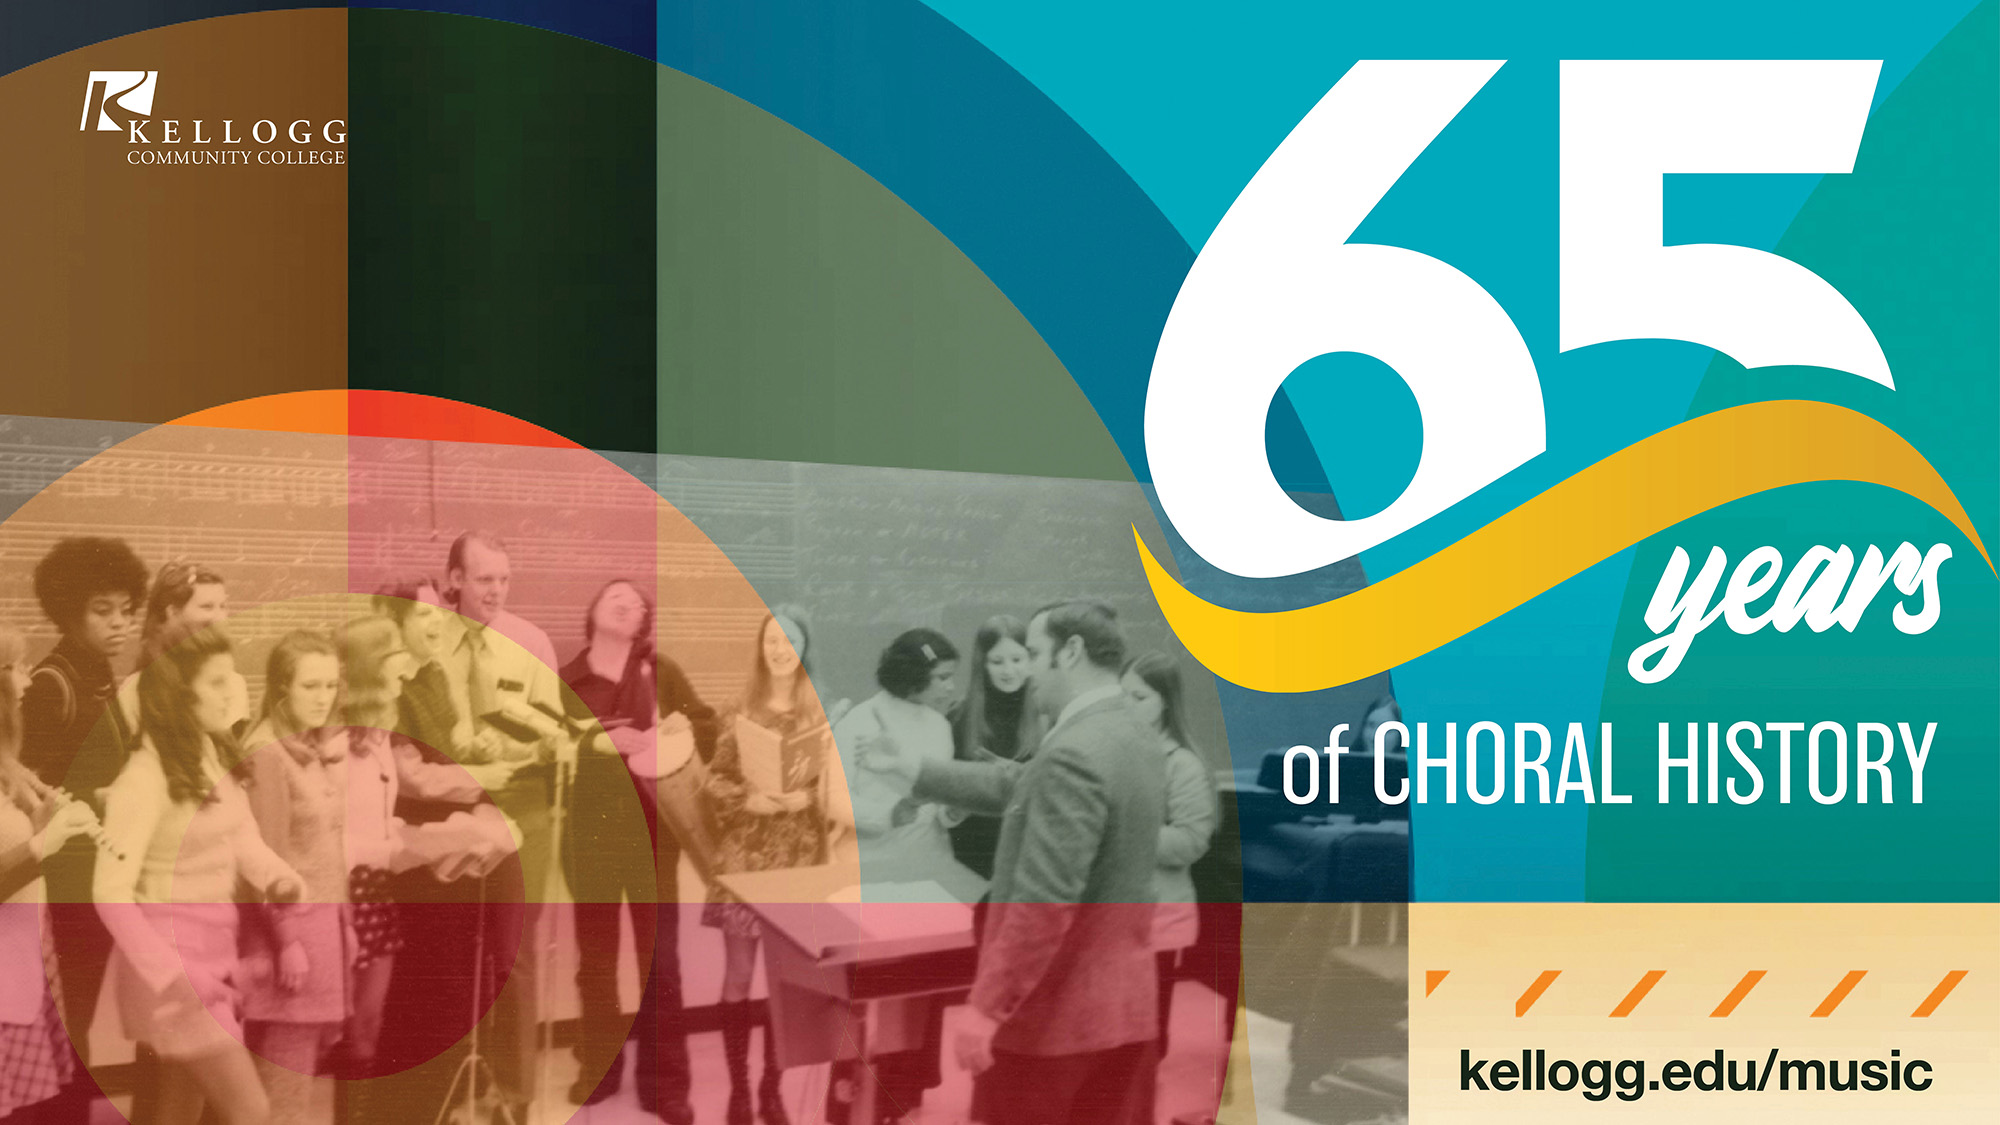 """A graphic featuring an archival photo of a KCC choir and text that reads """"65 years of choral history. www.kellogg.edu/music."""""""